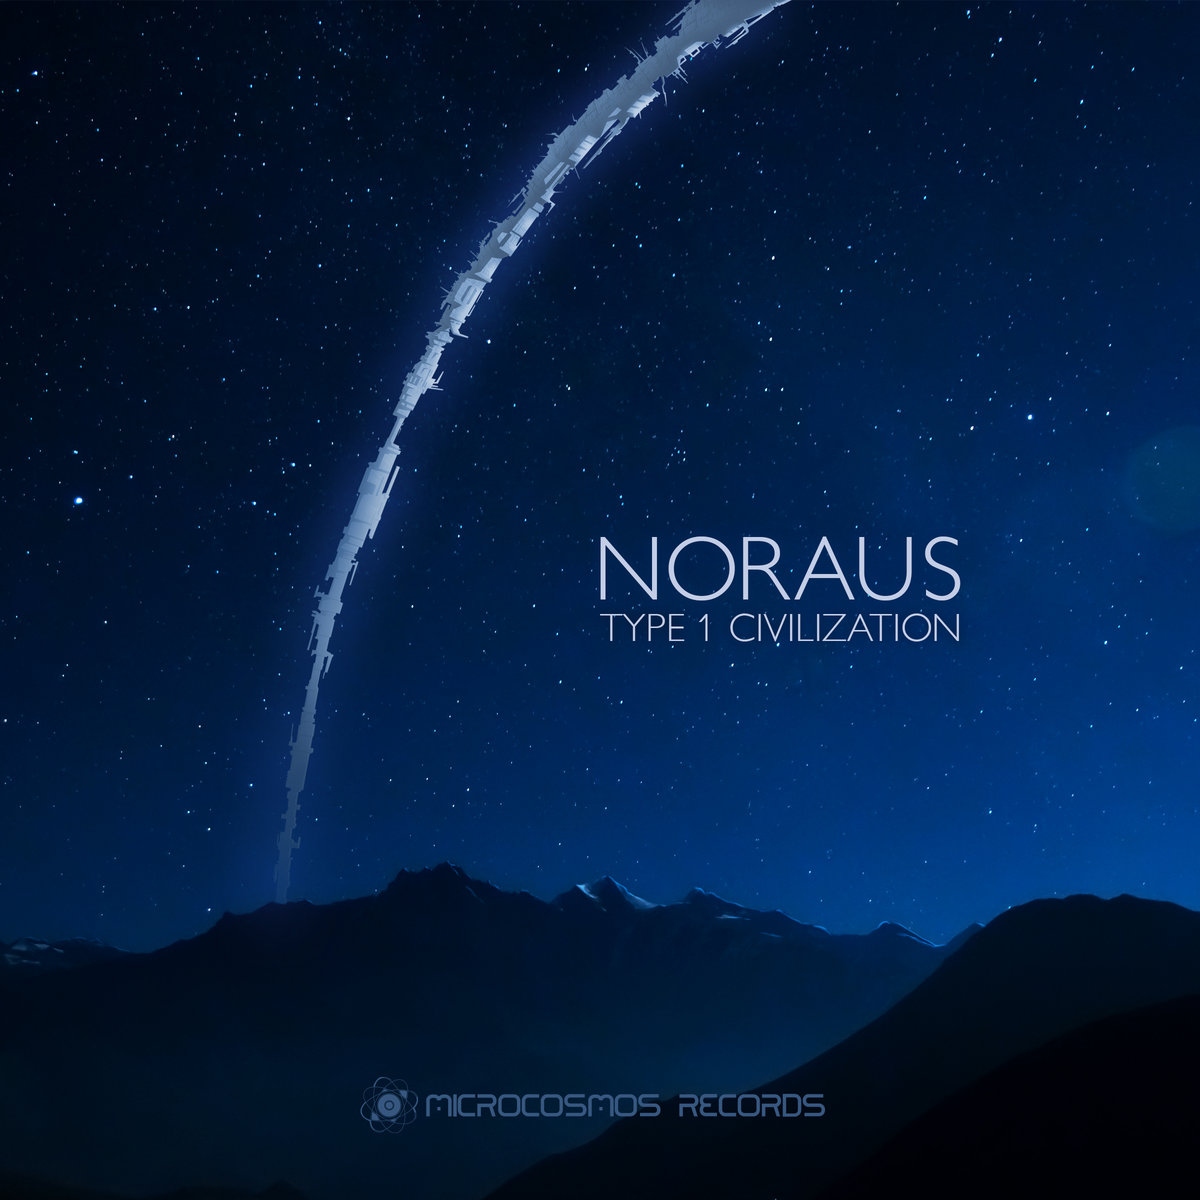 Noraus - Orbital Highway @ 'Type 1 Civilization' album (ambient, chill-out)